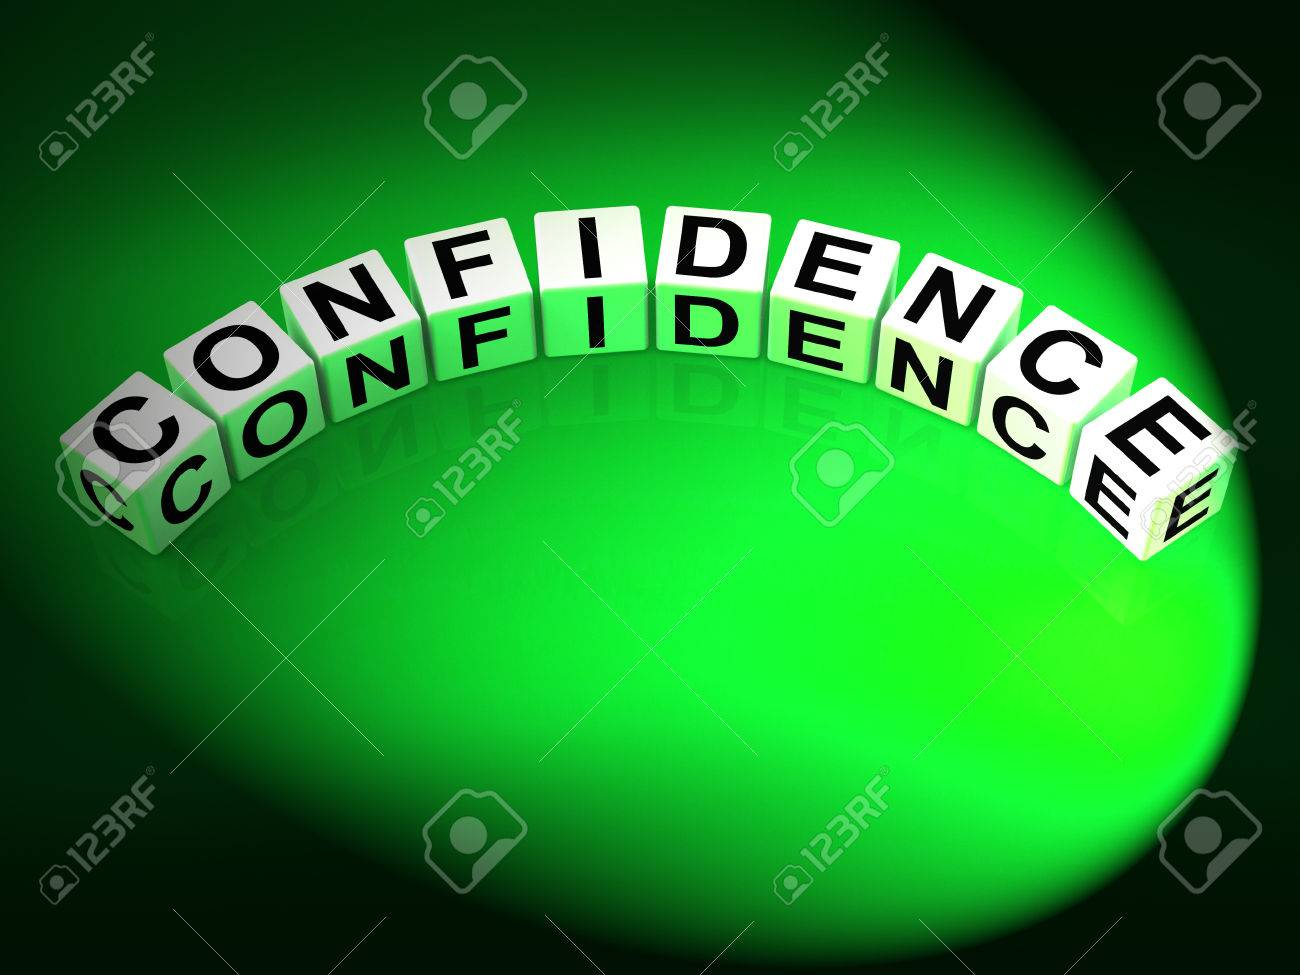 Confidence Letters Meaning Believe In Yourself And Certainty Stock